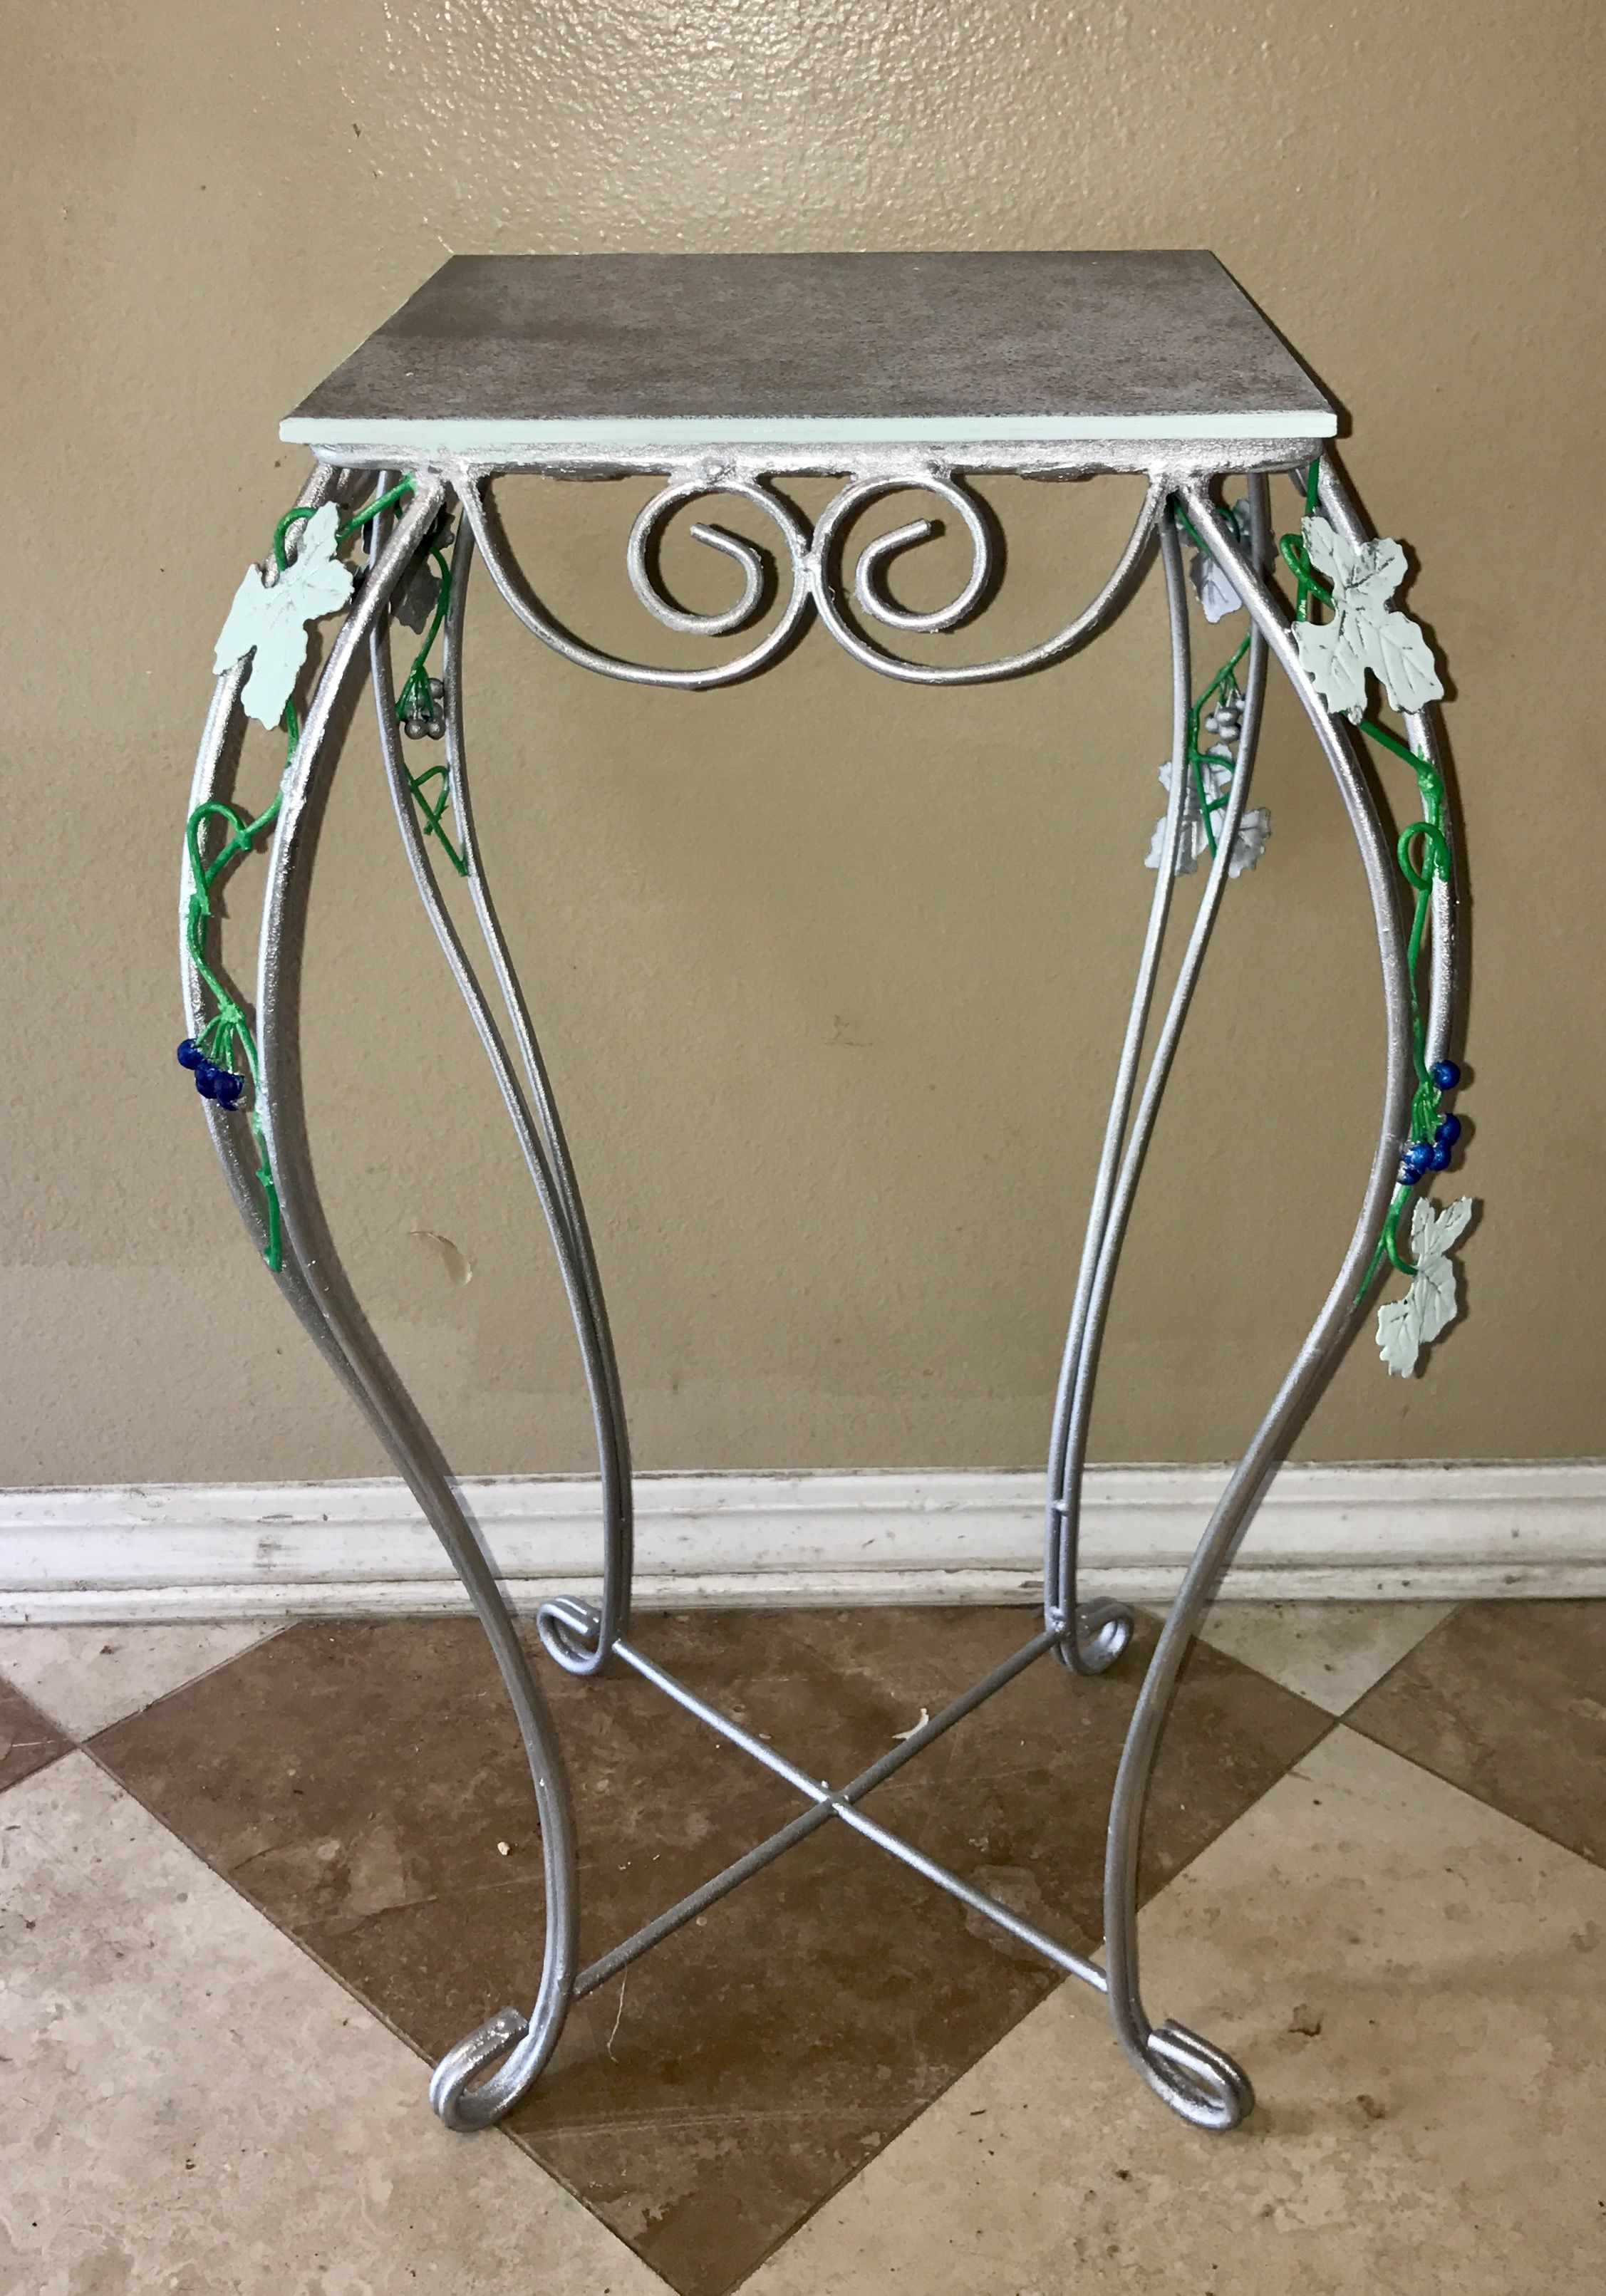 vintage tall metal silver accent table planter tile top leaf painted vine design inexpensive house decor white drum childrens bedside small chest floor separator conversation sets